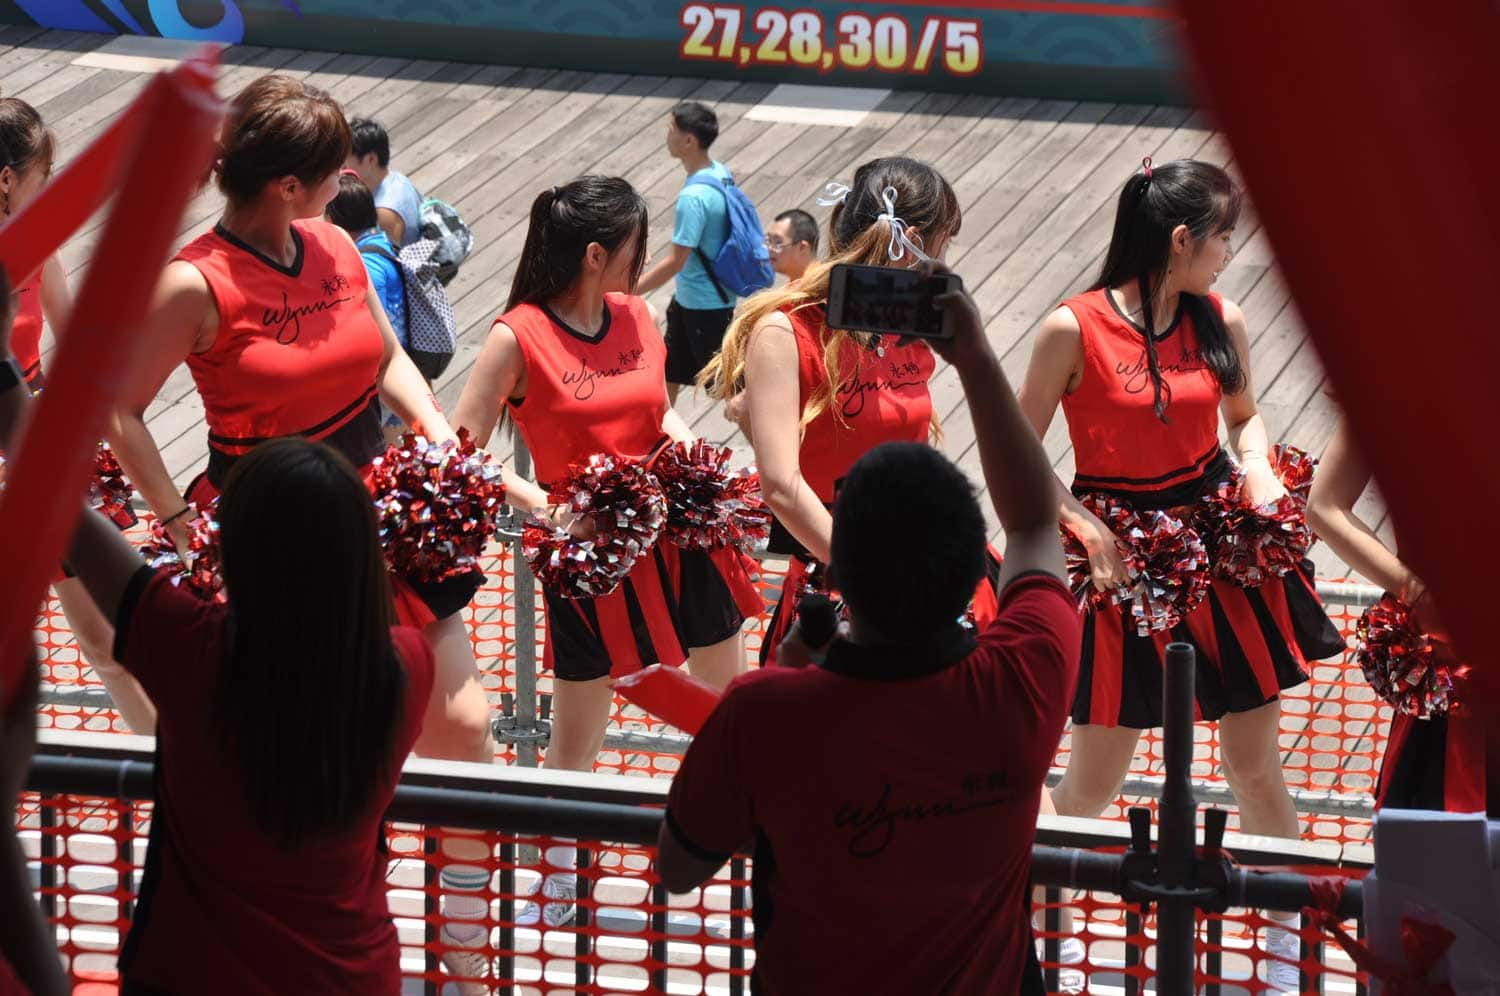 Macau Dragonboat Races Wynn cheerleaders